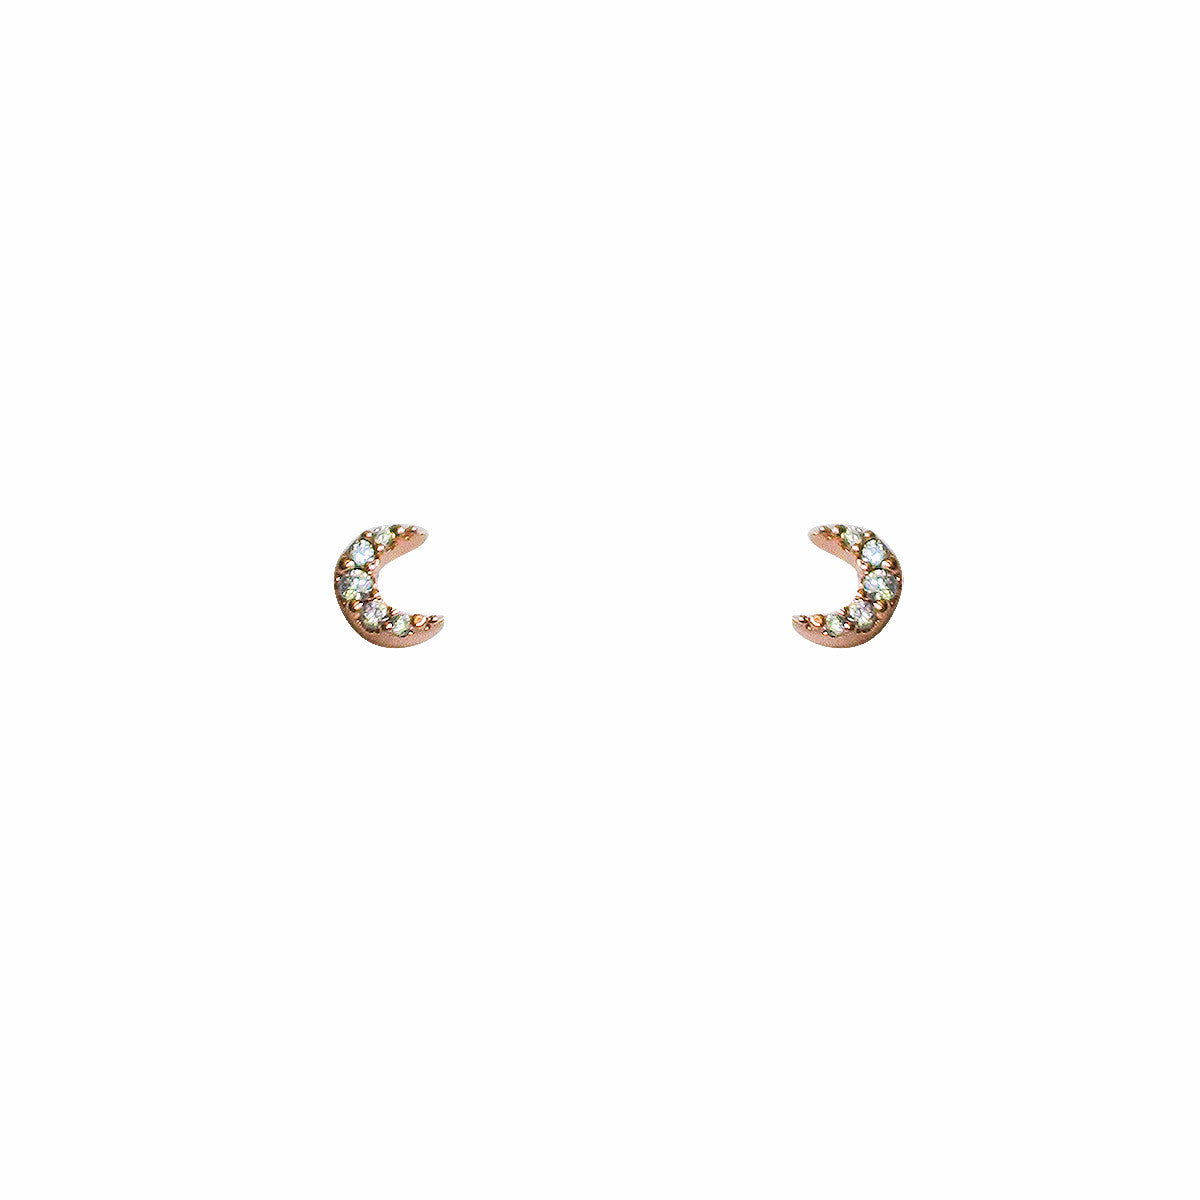 MINI PAVE MOON EARRINGS